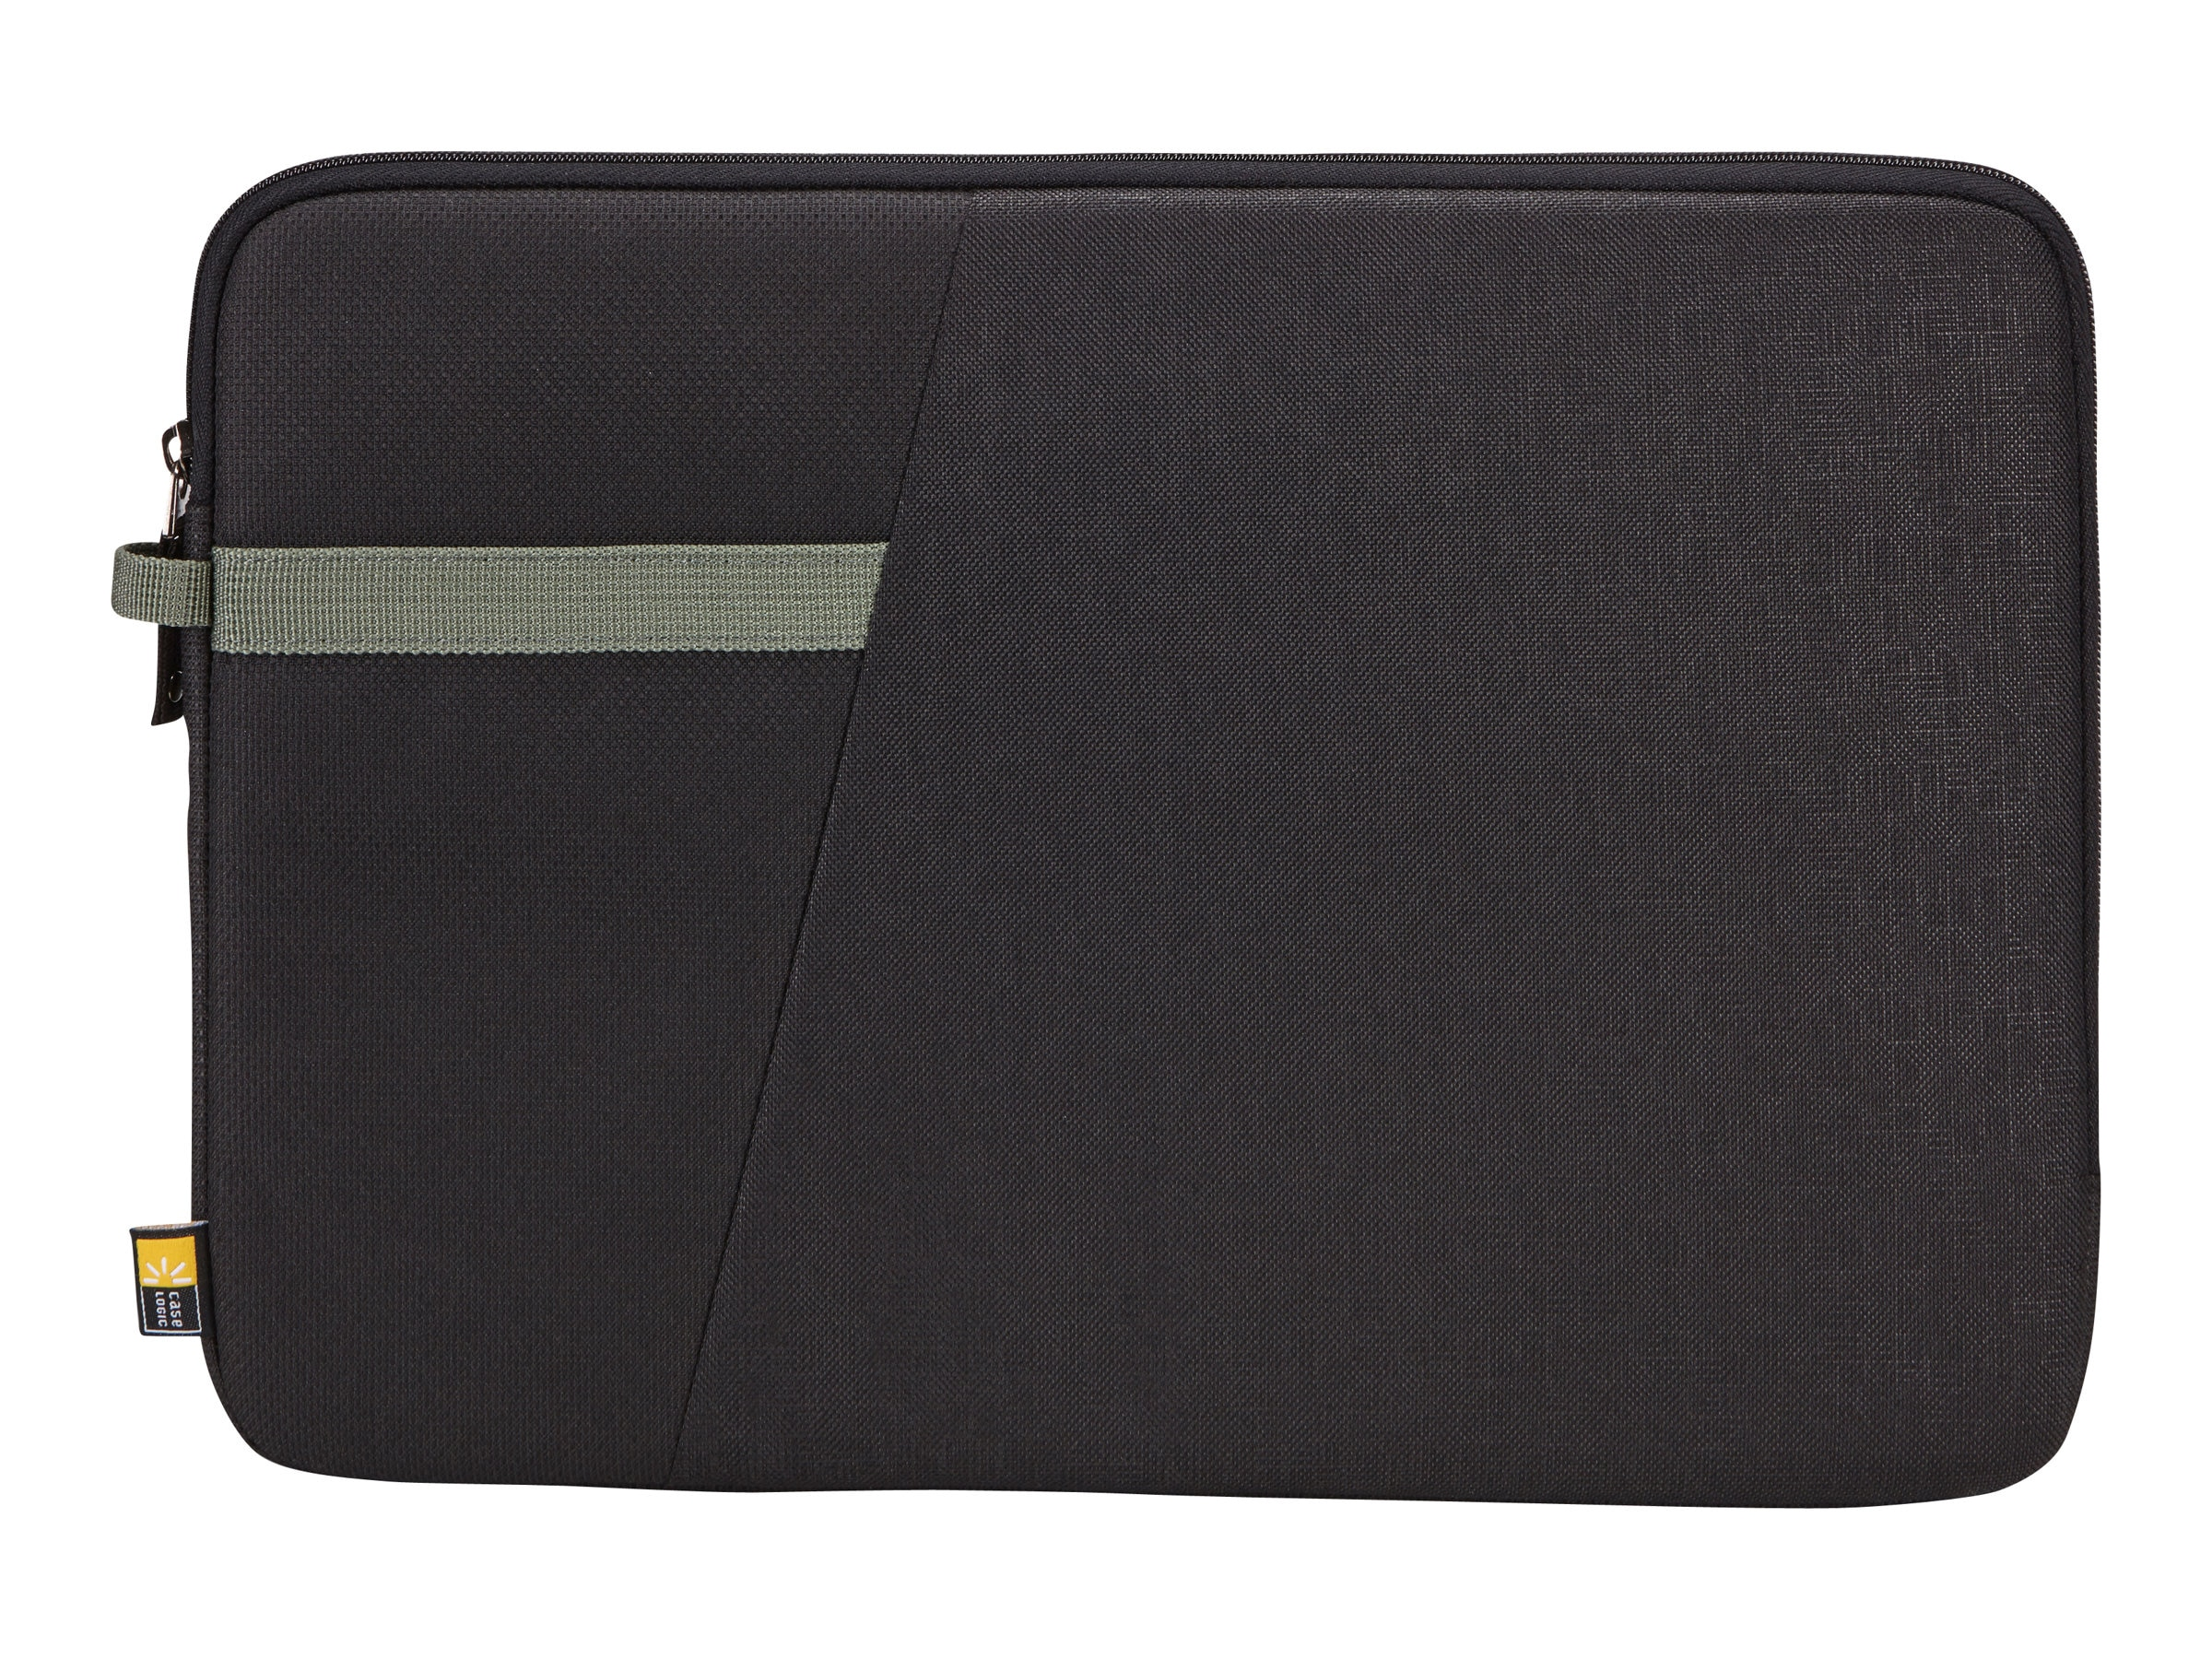 Case Logic Ibira 13.3 Laptop Sleeve, Black